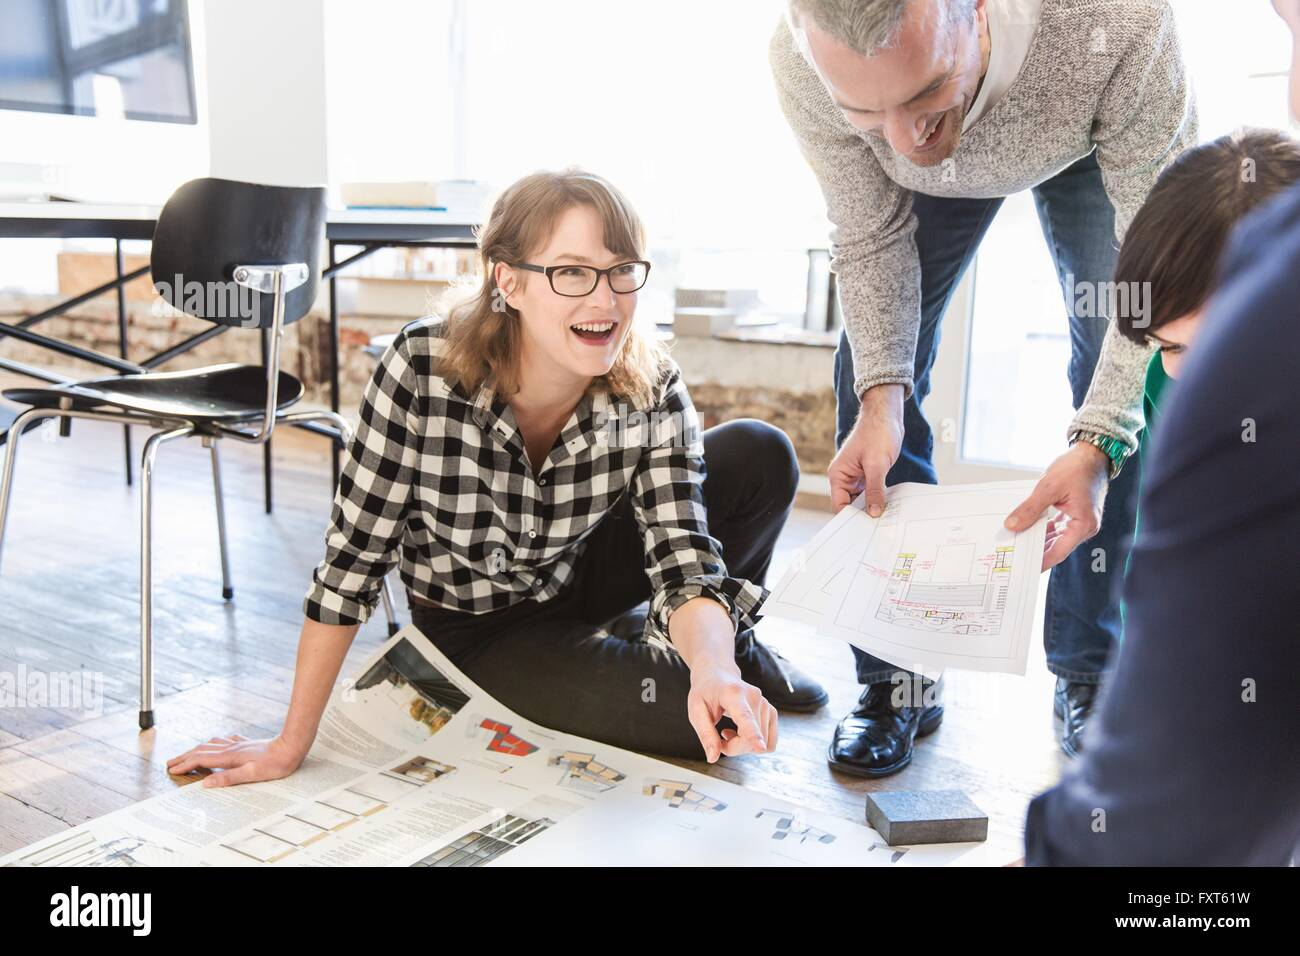 Architects on office floor discussing blueprint smiling - Stock Image